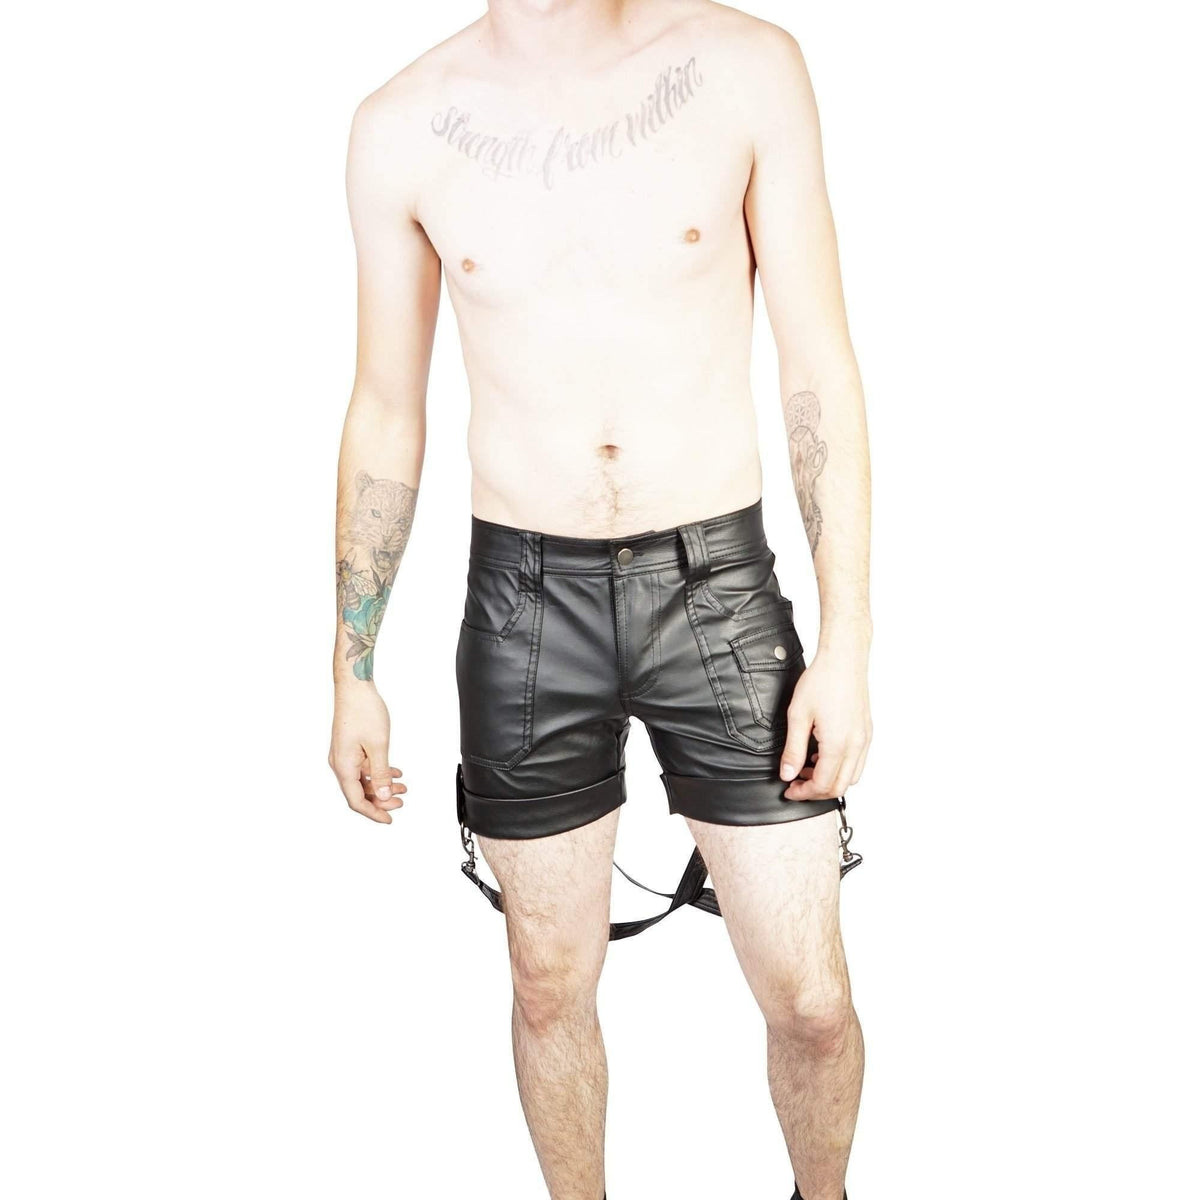 Lip Service Gothic Boy Scout Latex Look Shiny Black PVC Vinyl Bondage Shorts-Salemonster